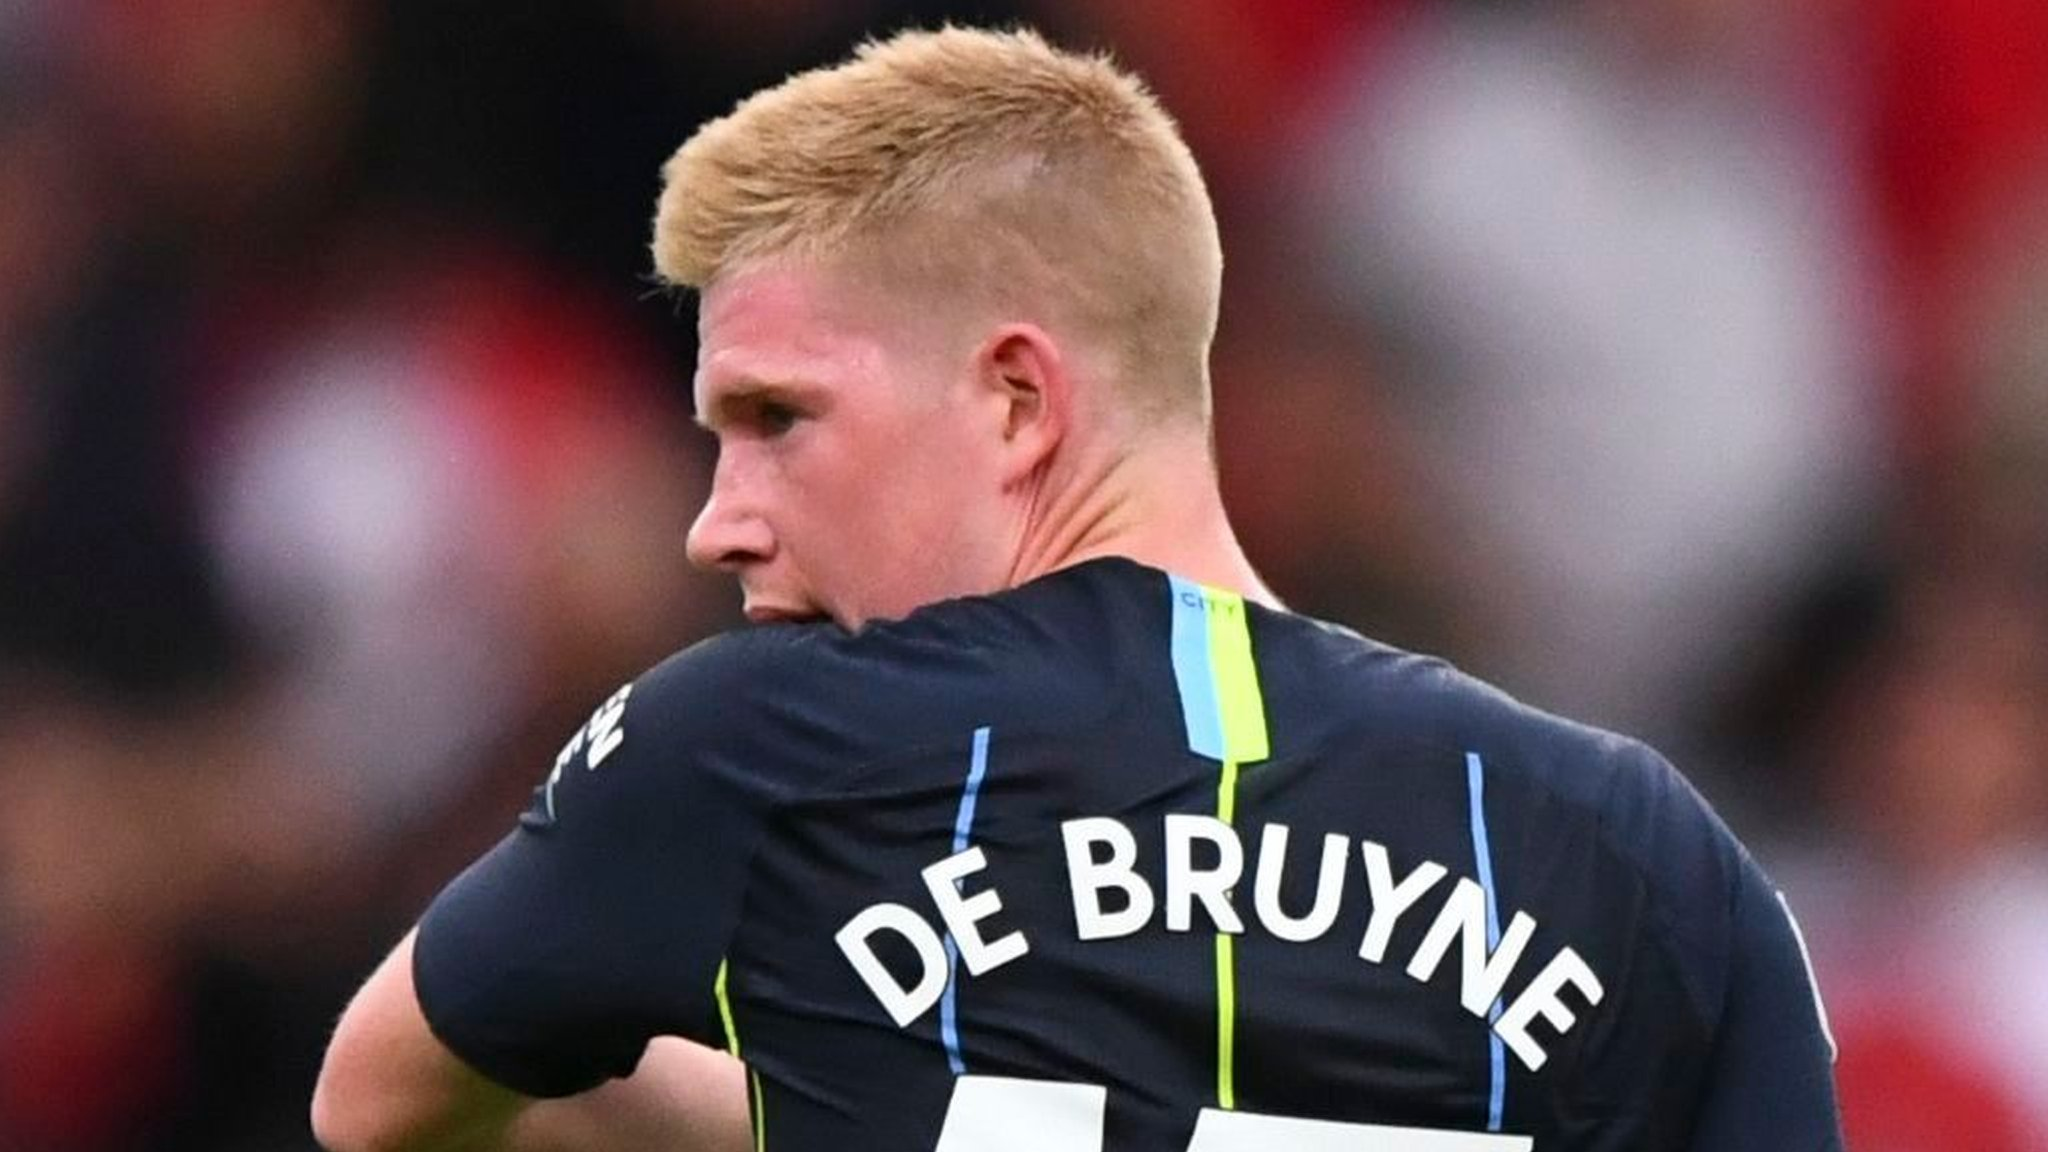 Grealish should look at De Bruyne